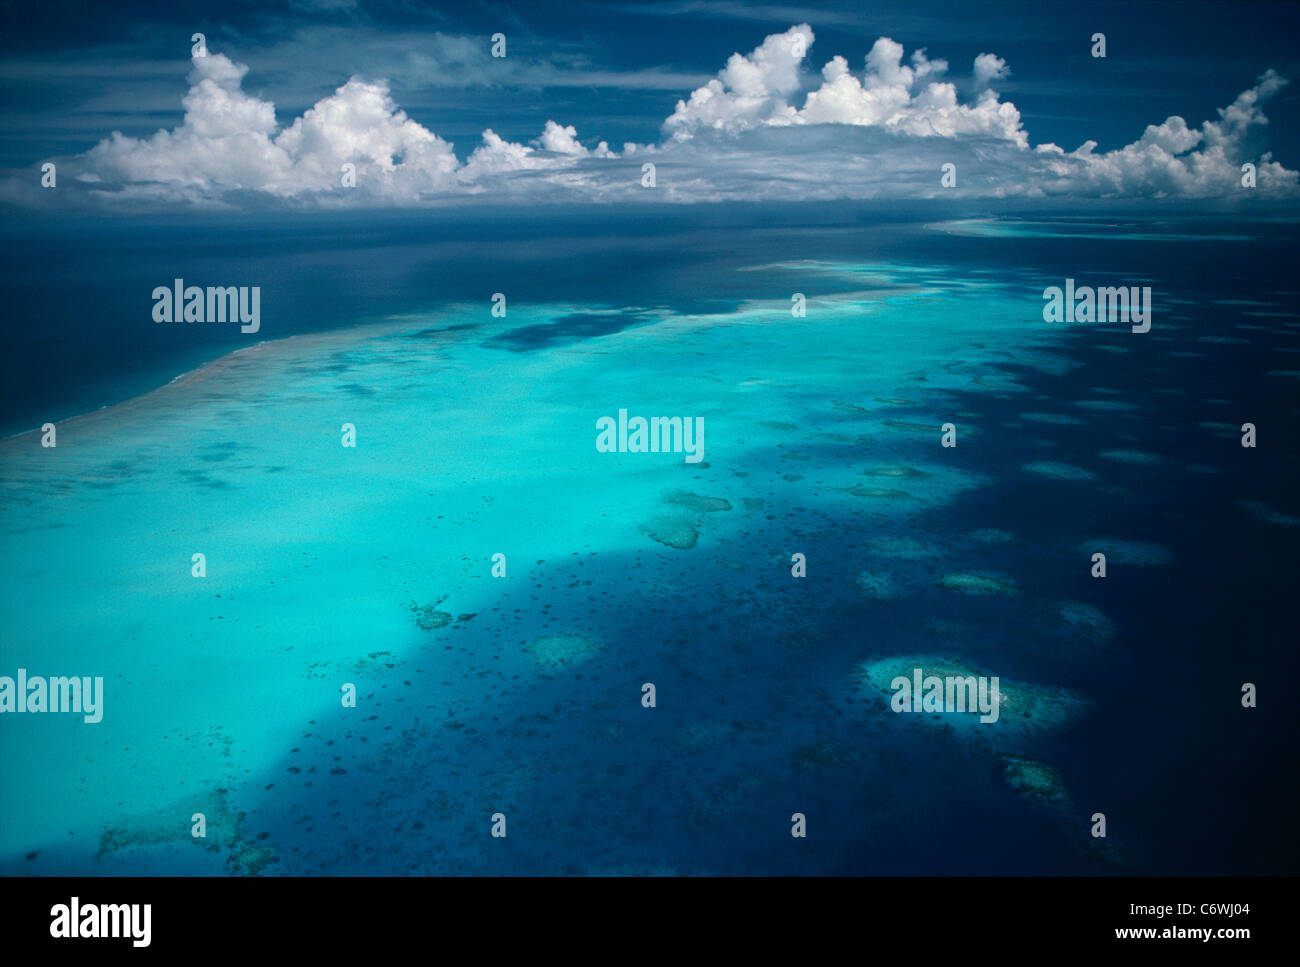 Fringing Coral Reef. Palau Islands, Micronesia, Pacific Ocean Stock Photo